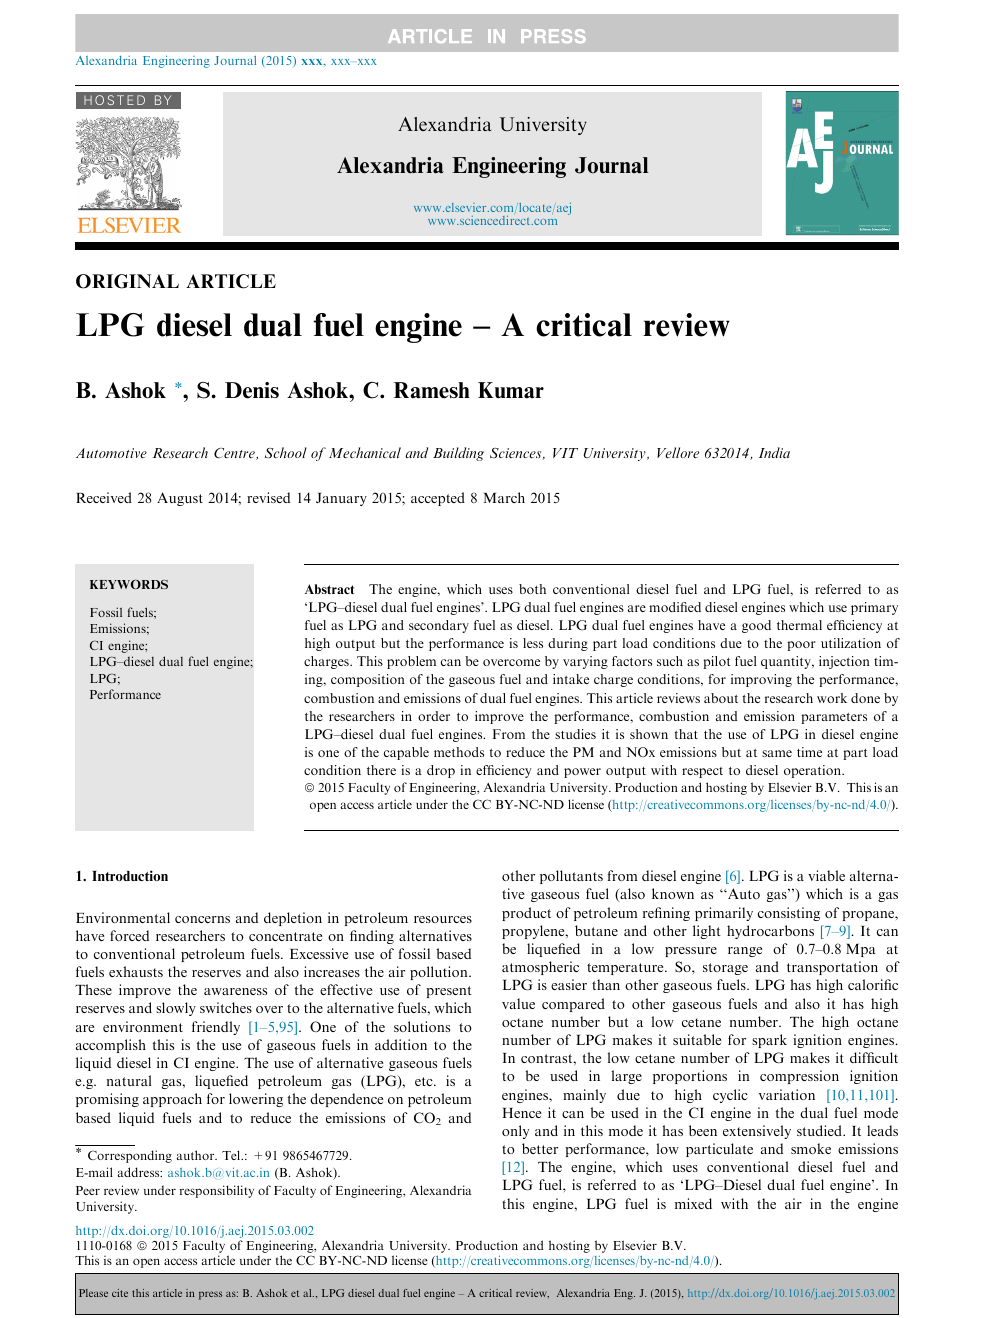 LPG diesel dual fuel engine – A critical review – topic of